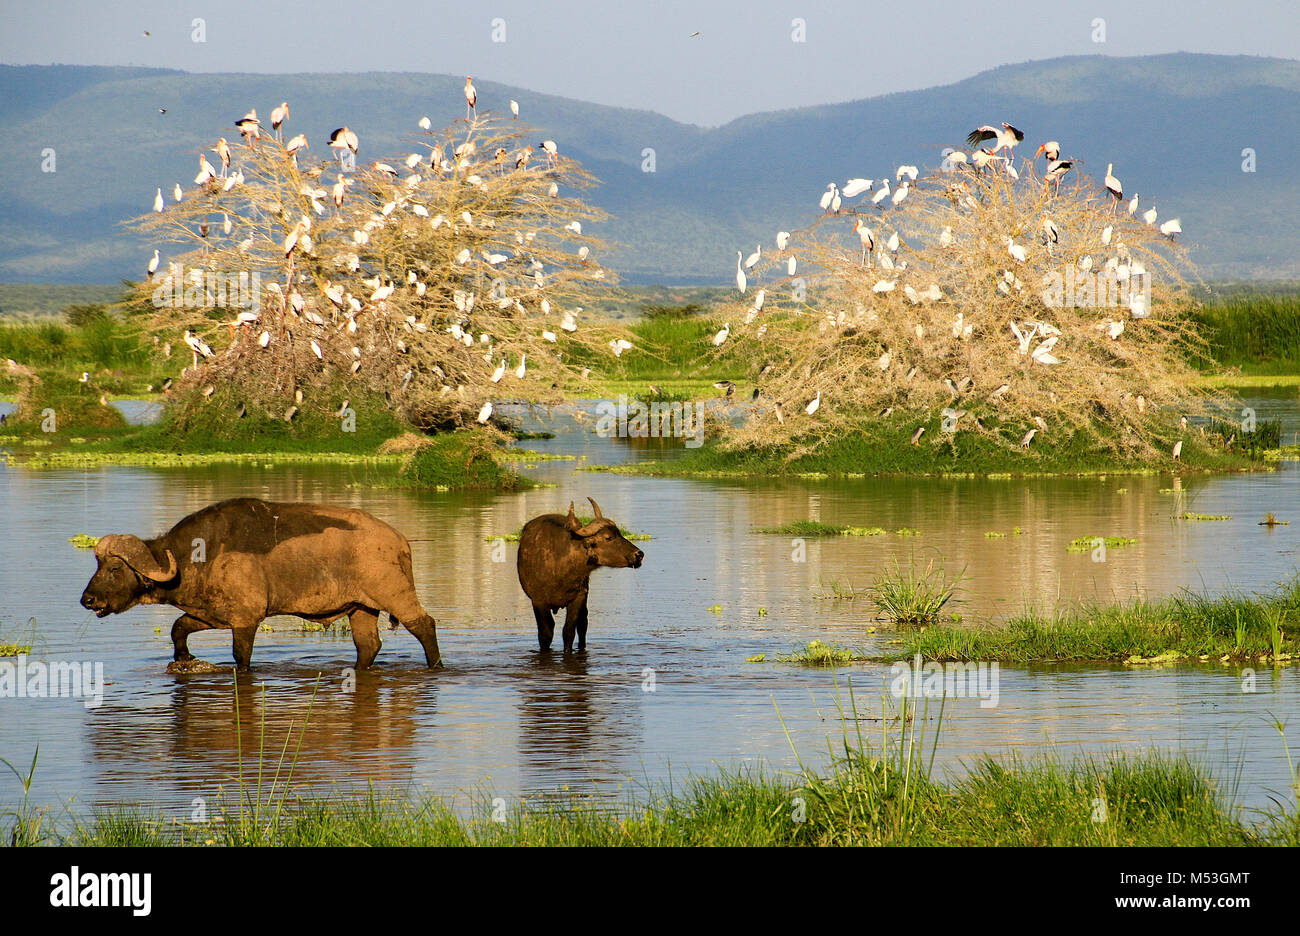 African Buffalo AKA Cape Buffalo (Syncerus caffer) in a water hole. Photographed in Tanzania - Stock Image